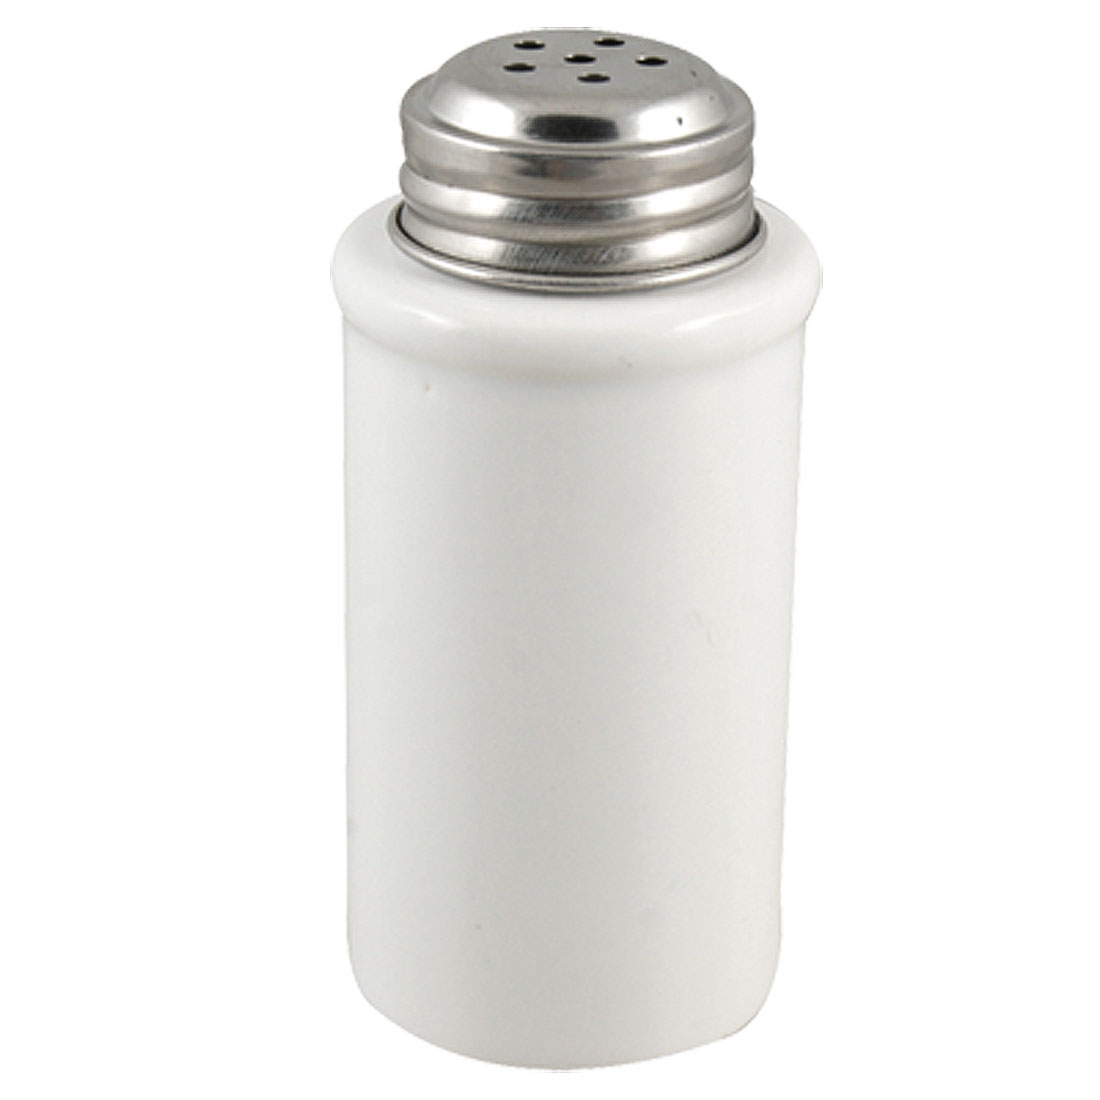 Kitchen 3mm Diameter Outlet Hole Metal Cap White Ceramic Cruet Bottle